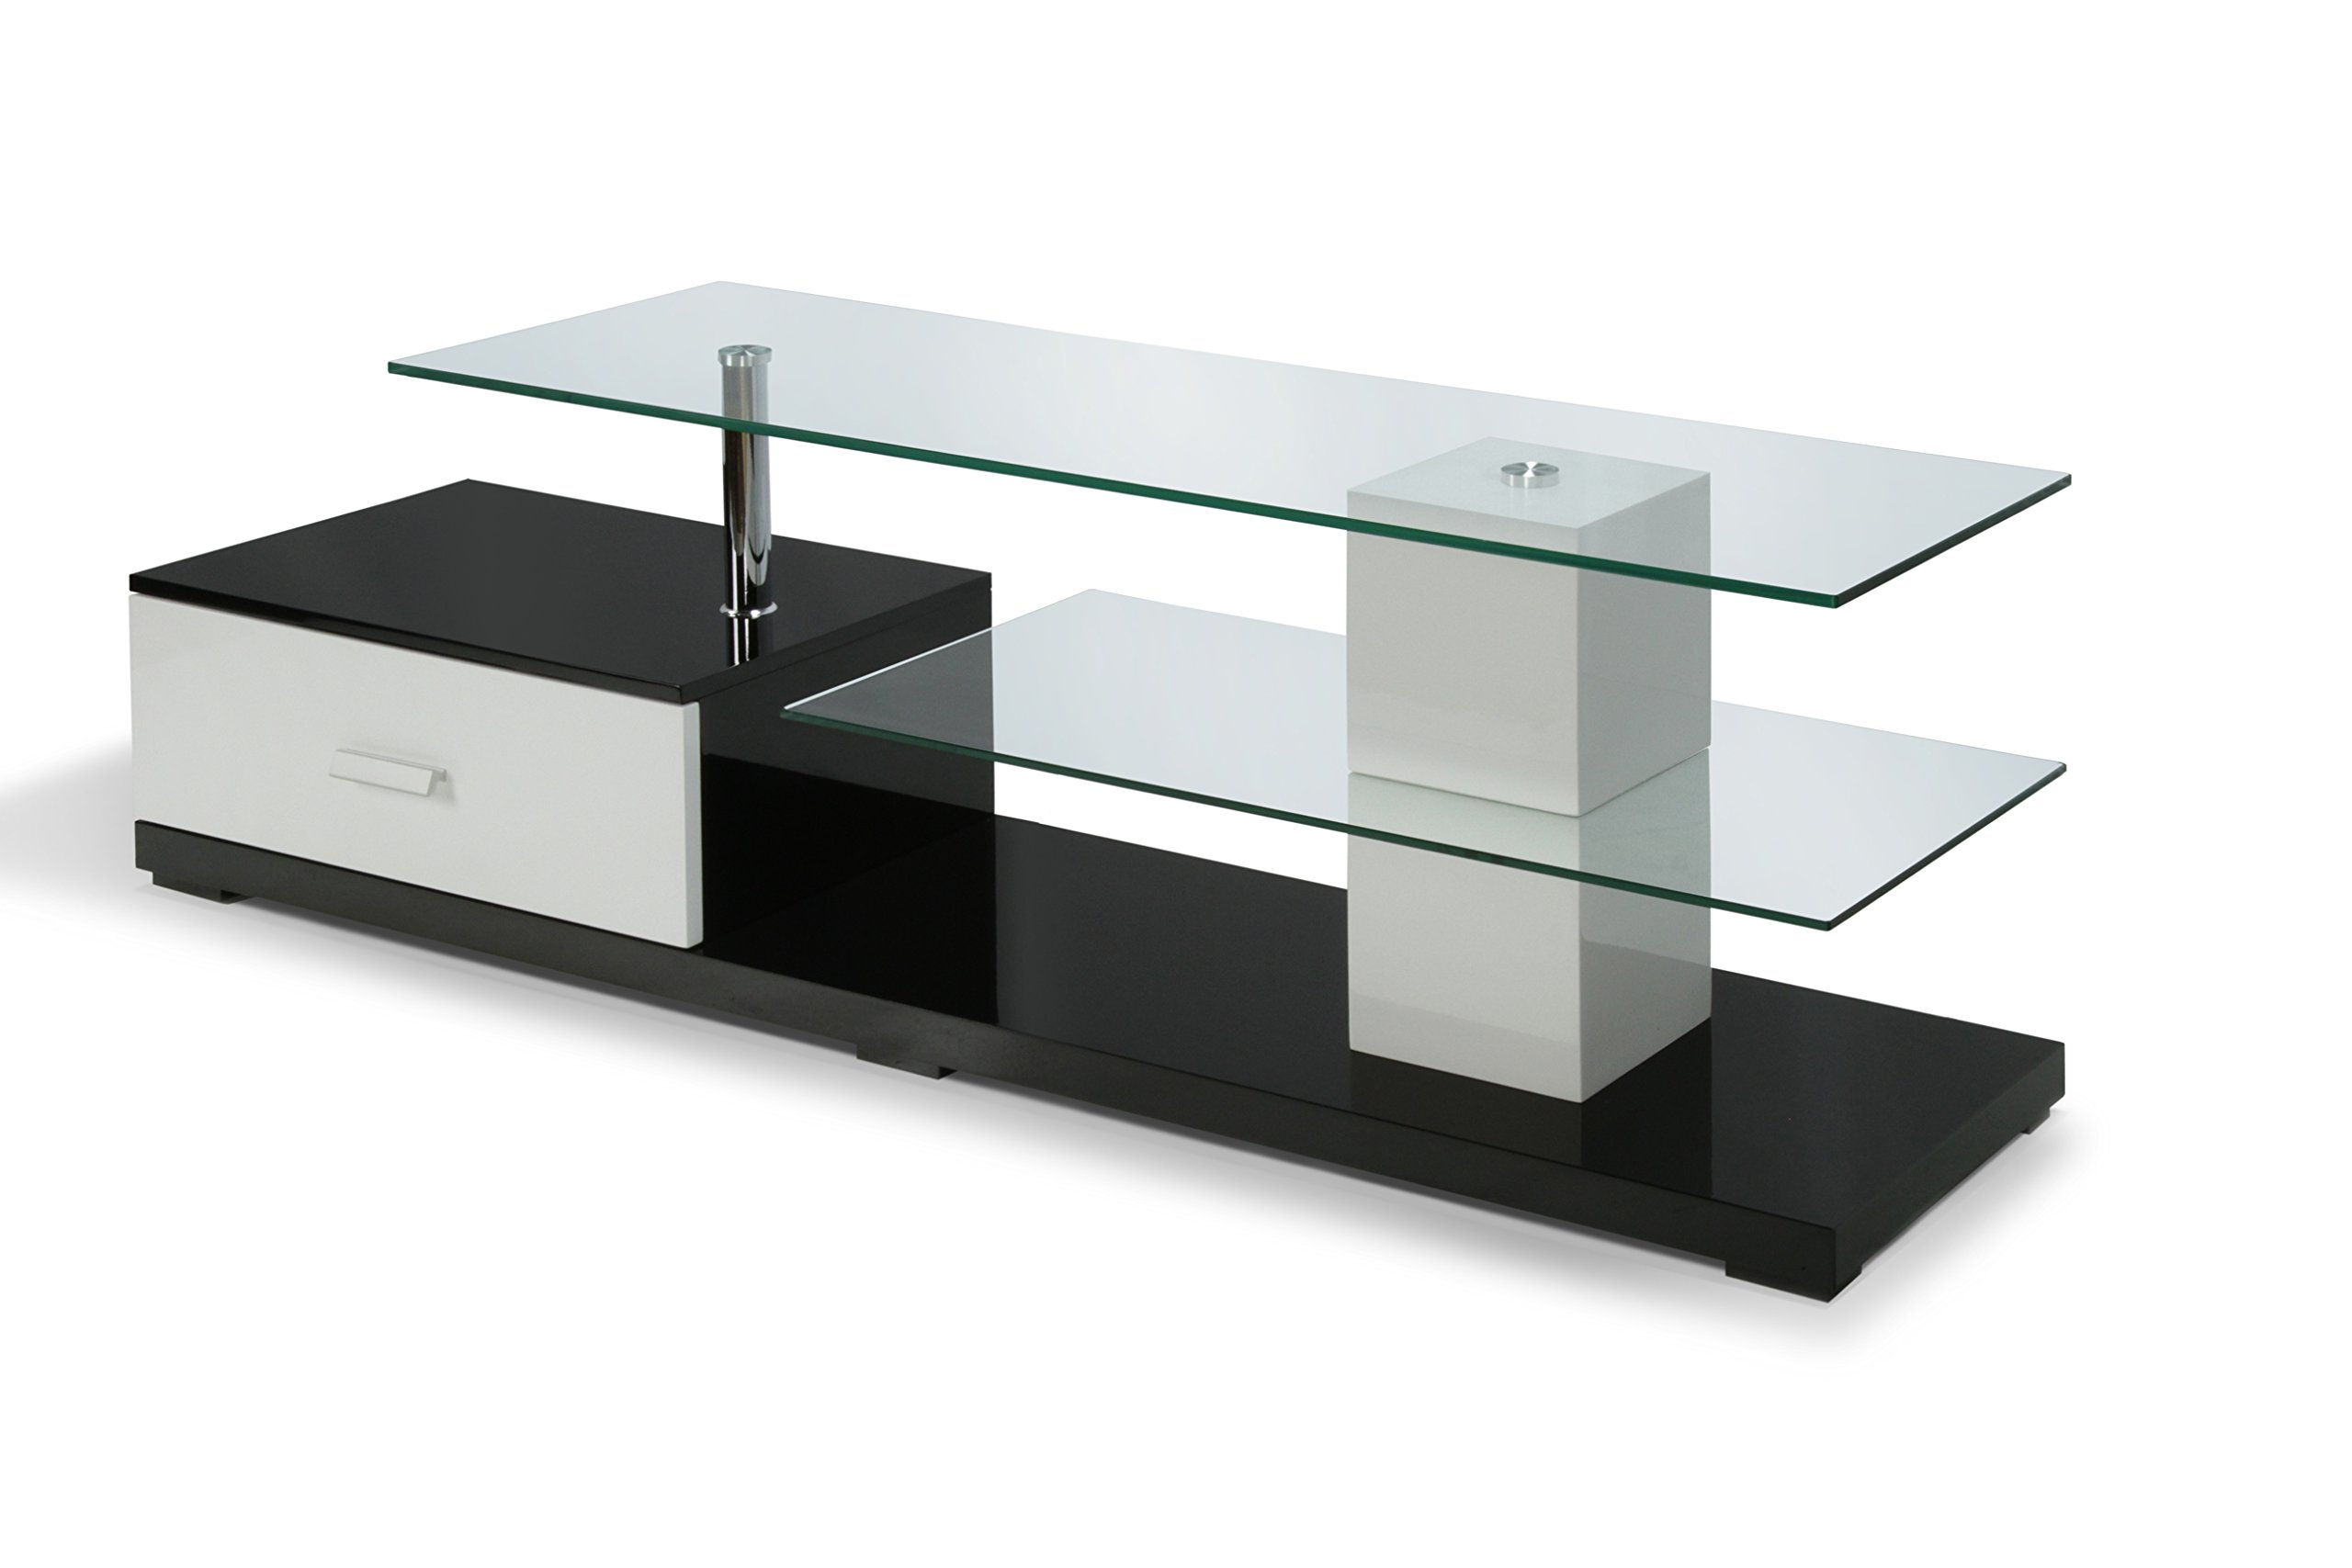 Furniture of America Flynn Contemporary TV Console with Storage Drawer, 63-Inch, Glossy Black and White by Furniture of America